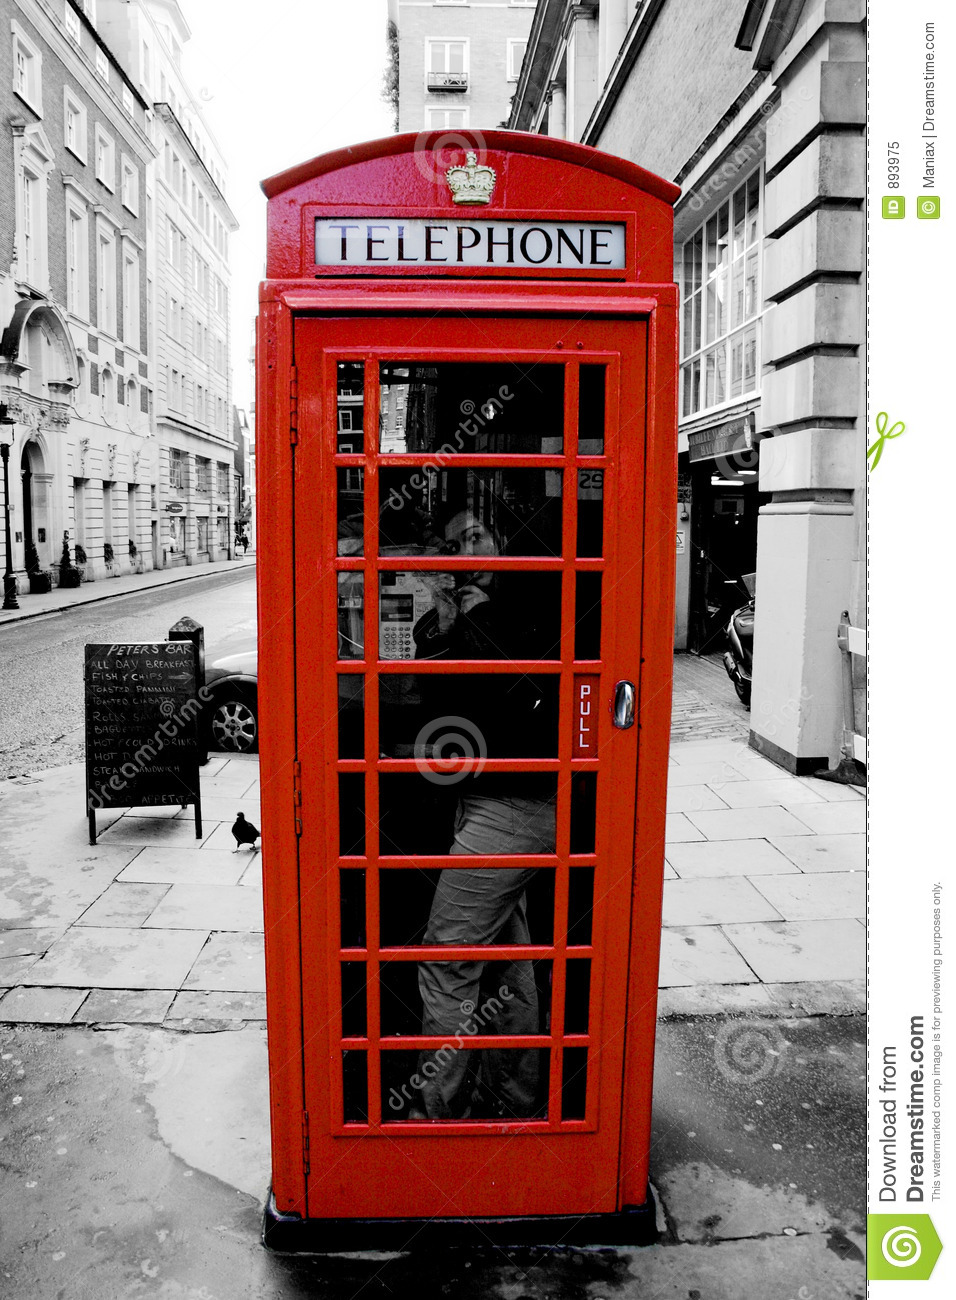 Telephonecell